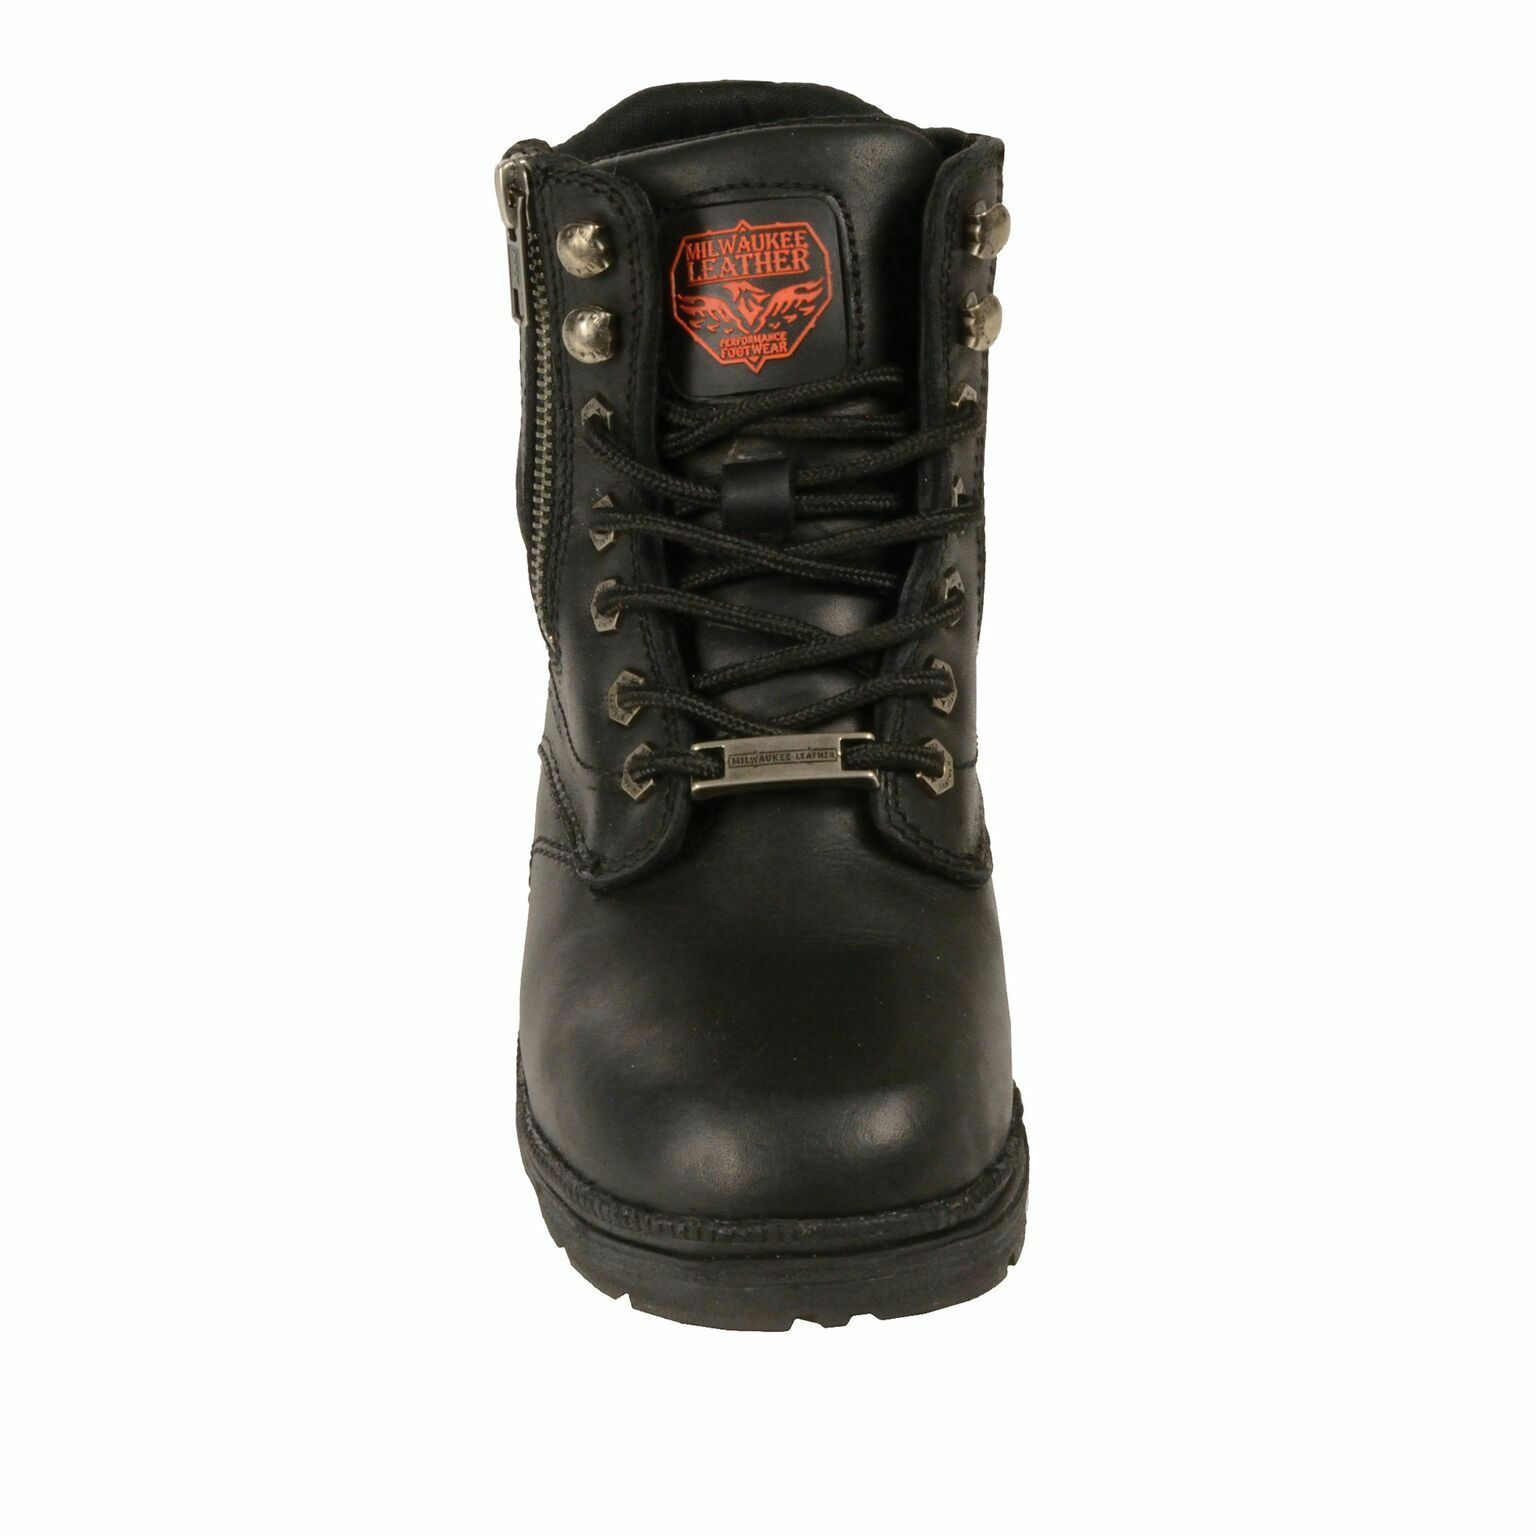 Milwaukee Leather Bota Mujer Cremallera lateral Bota Leather Puntera lisa-MBL9320 5bfdb5